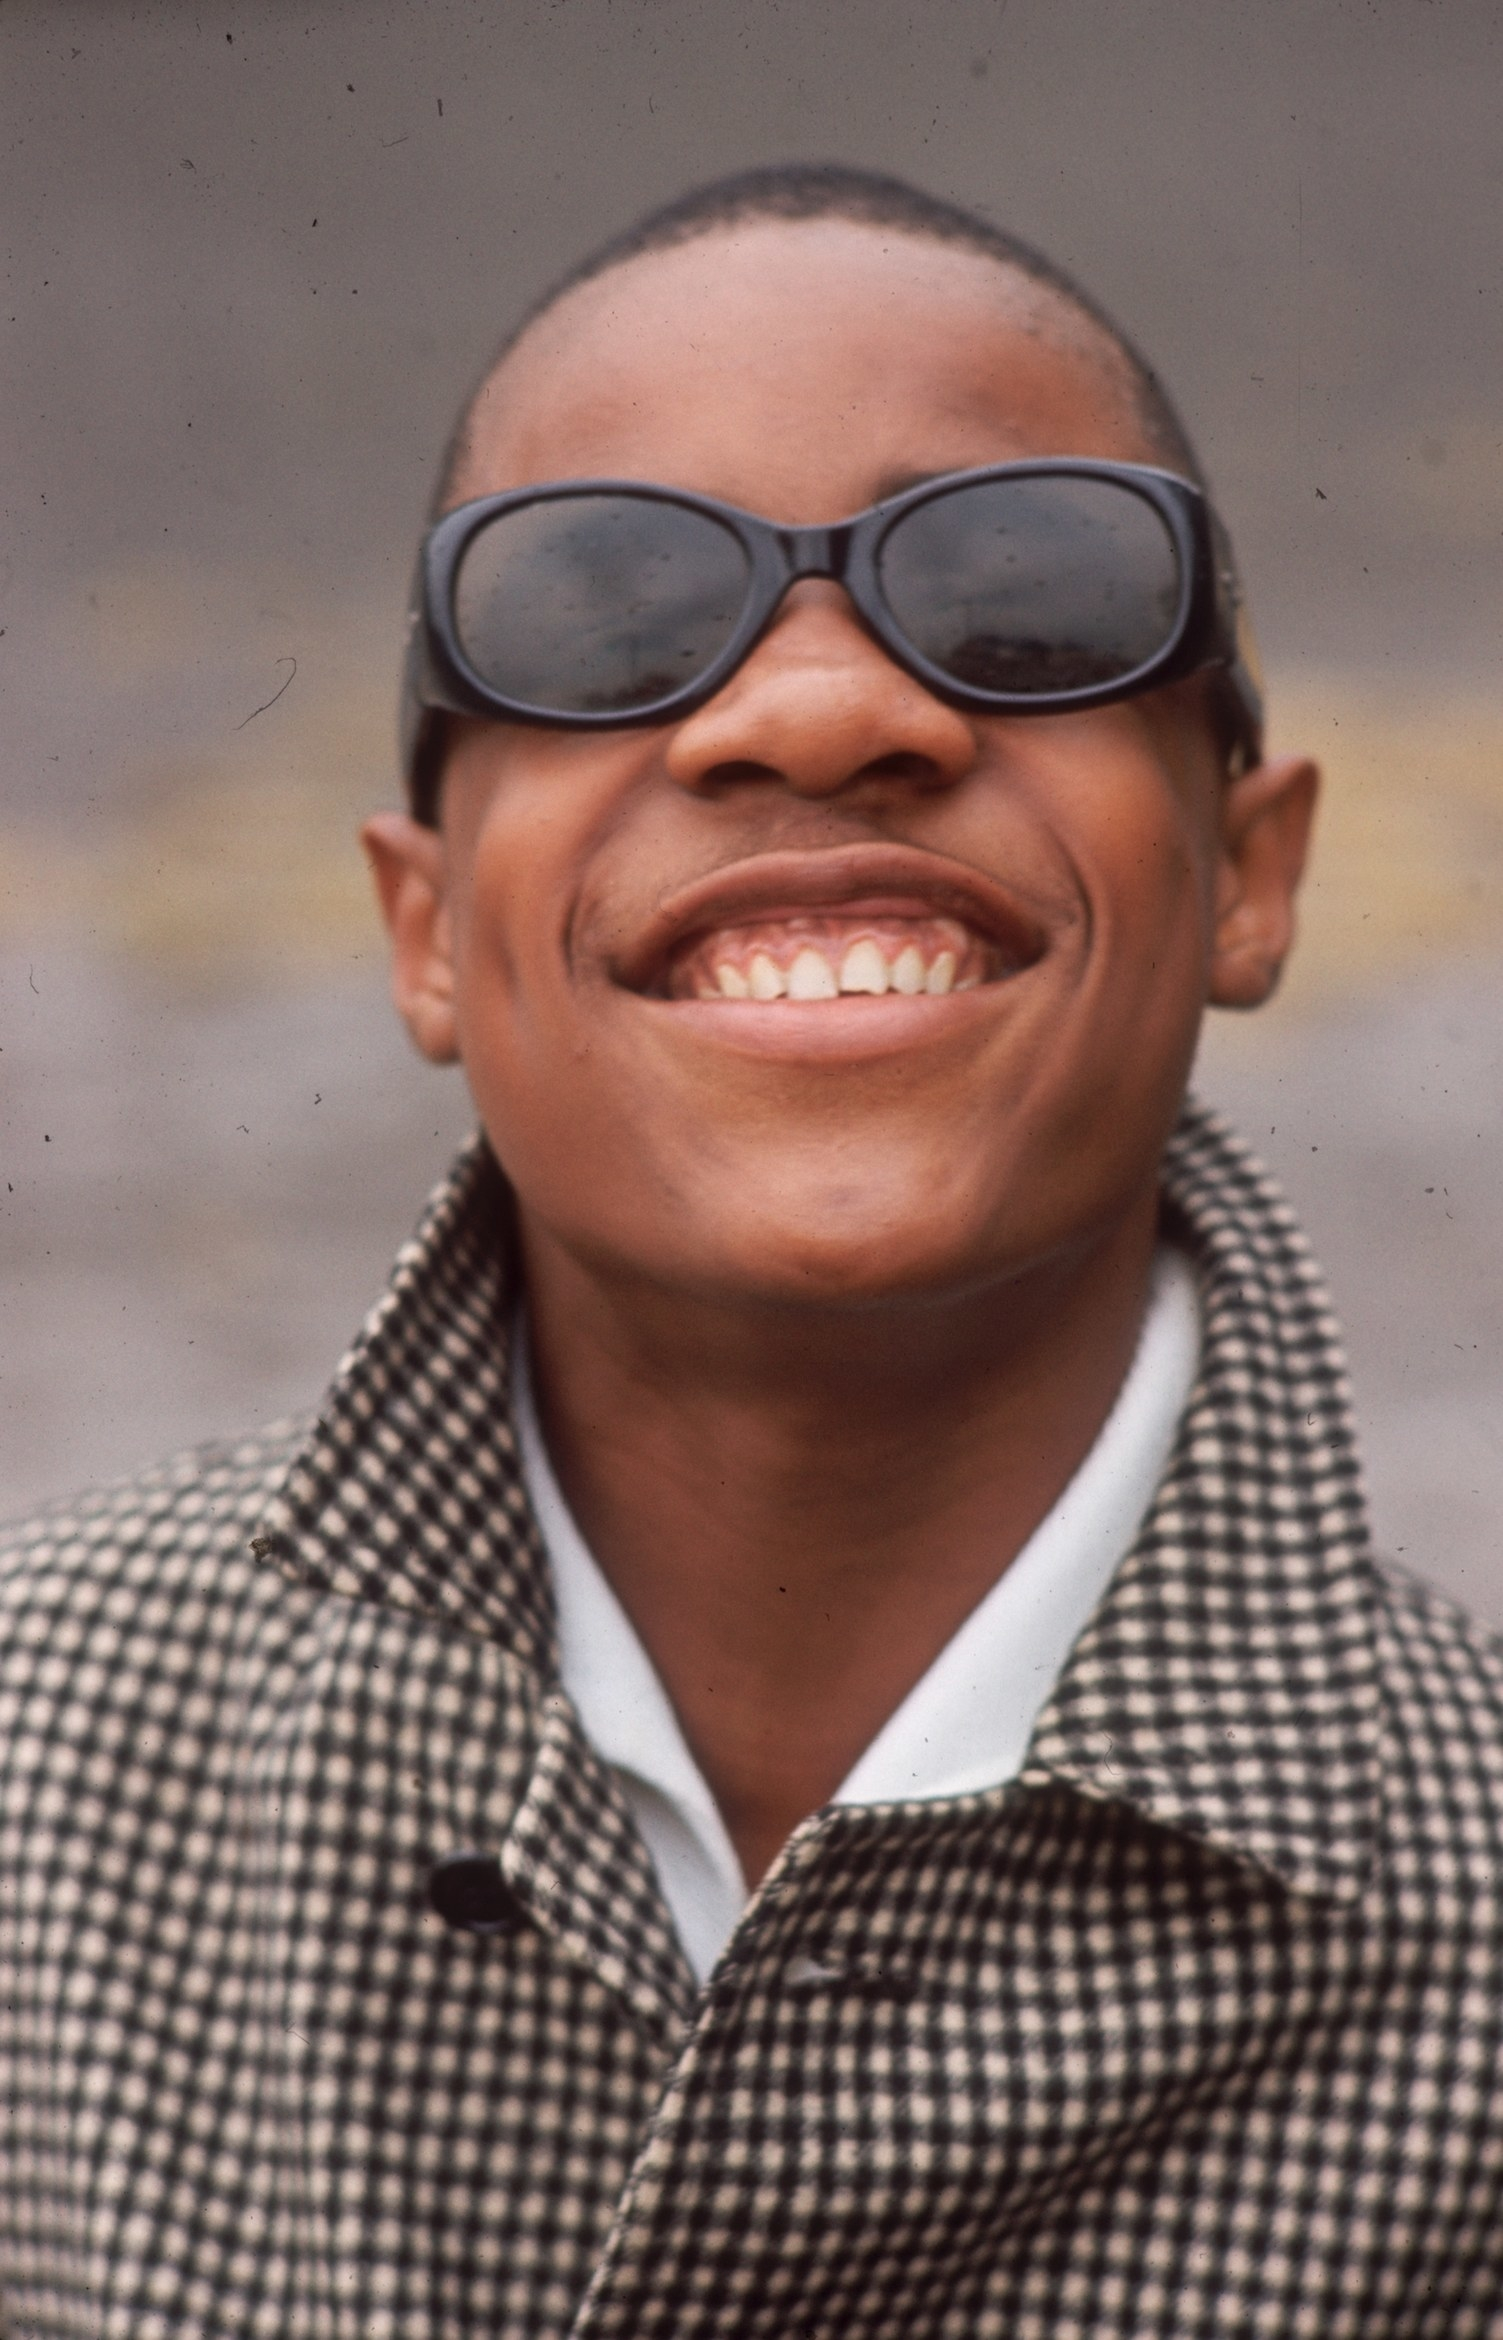 Steve smiling wearing cat-style sunglasses and a houndstooth coat